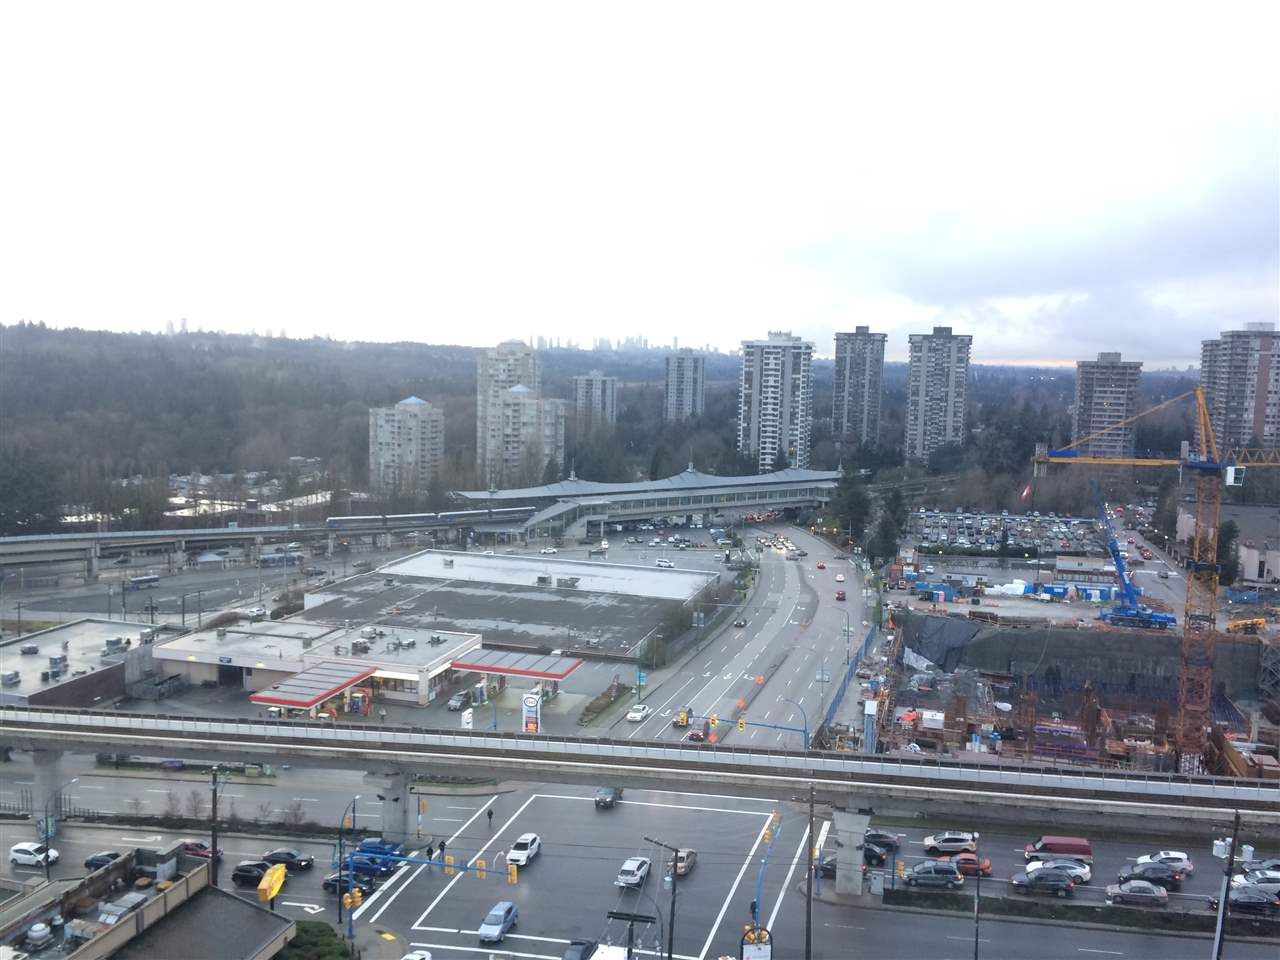 """Main Photo: Map location: 1402 518 WHITING Way in Coquitlam: Coquitlam West Condo for sale in """"UNION"""" : MLS®# R2430883"""